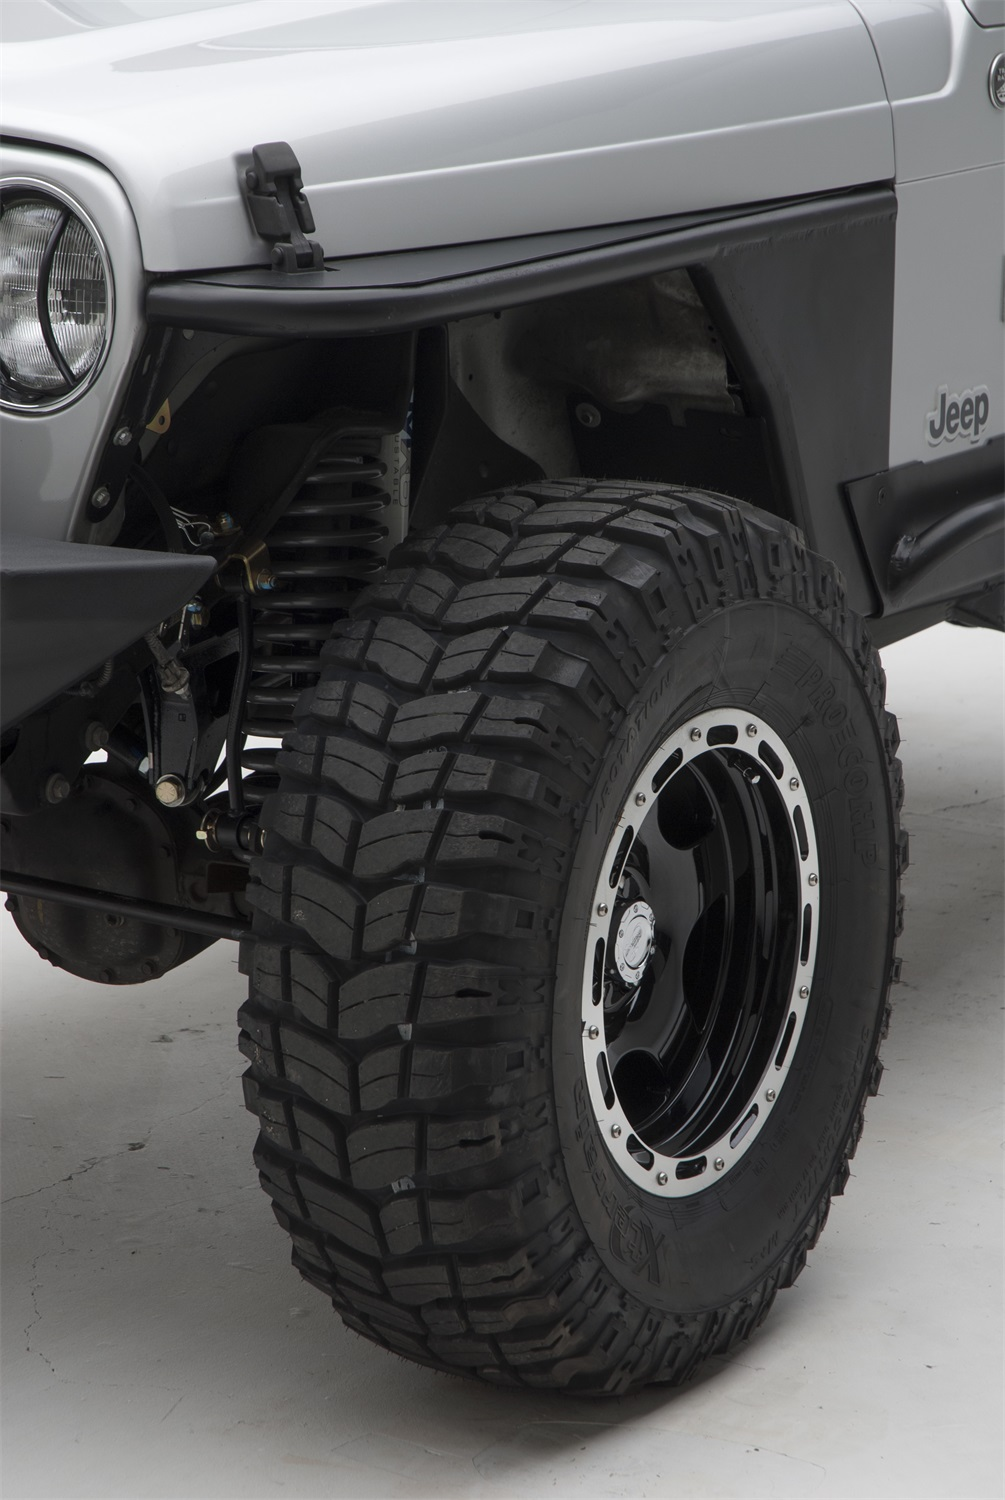 Jeep Tj Tube Fender Review Jeep Wrangler Parts